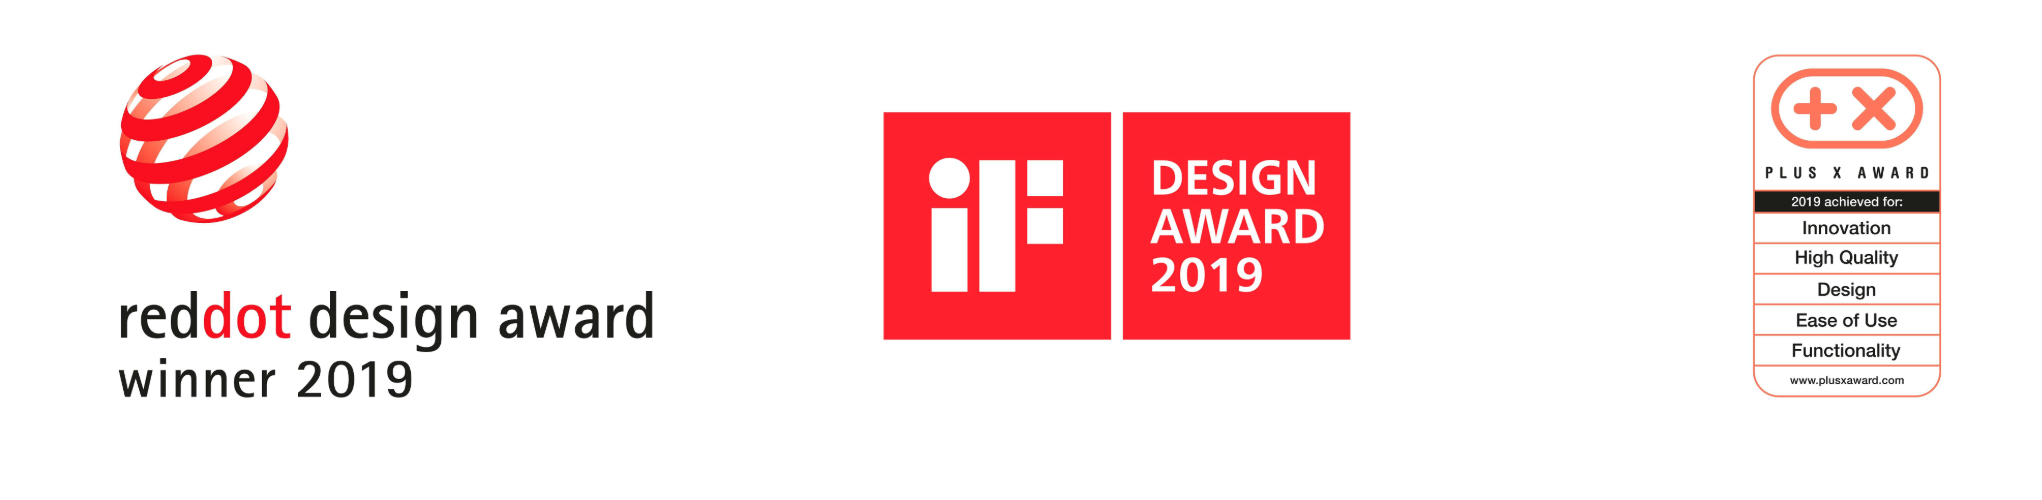 reddot design award bora